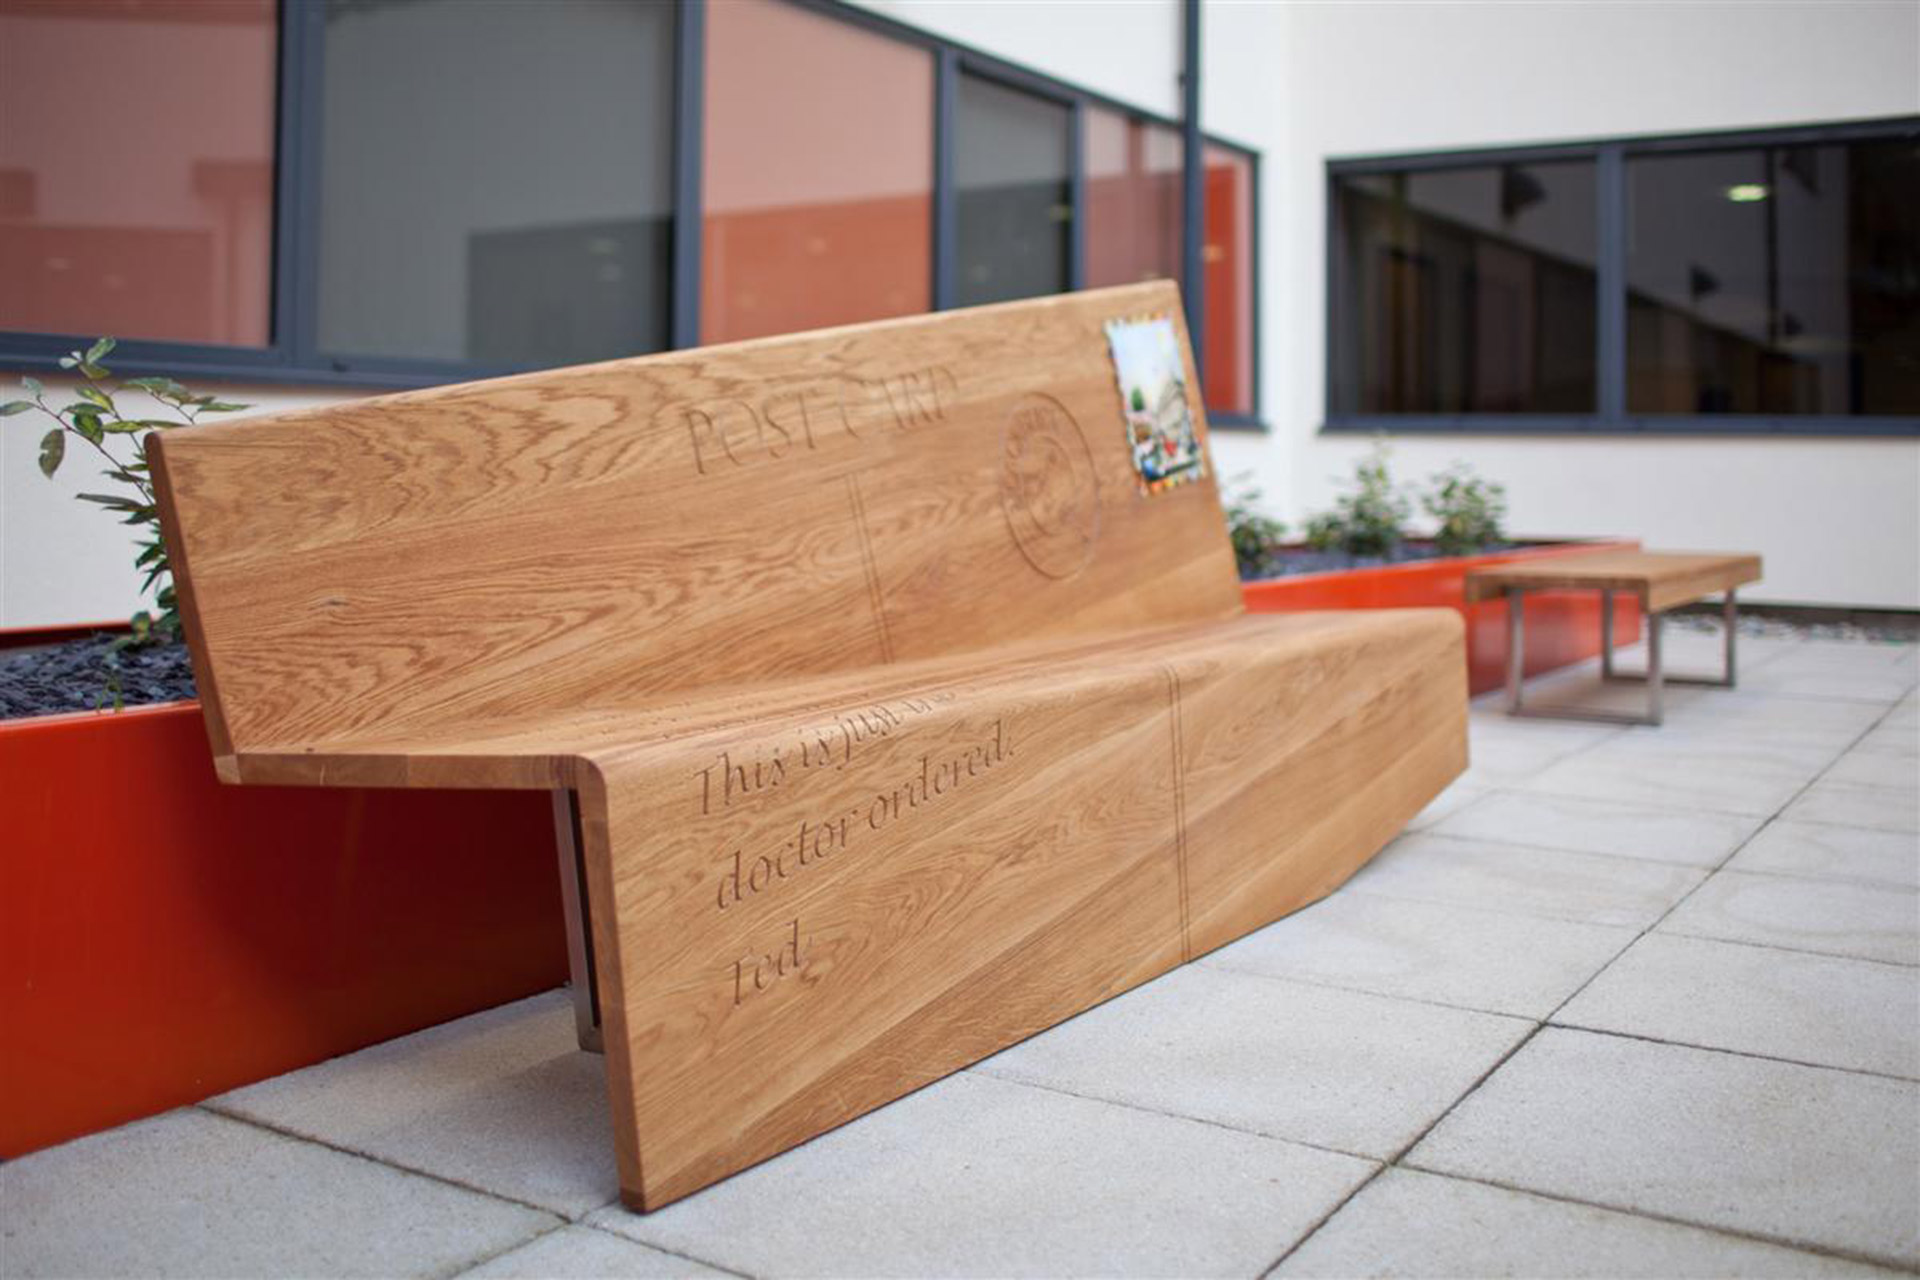 Boex designed rolled oak top bench in courtyard at Barbara Castle Way Health Centre